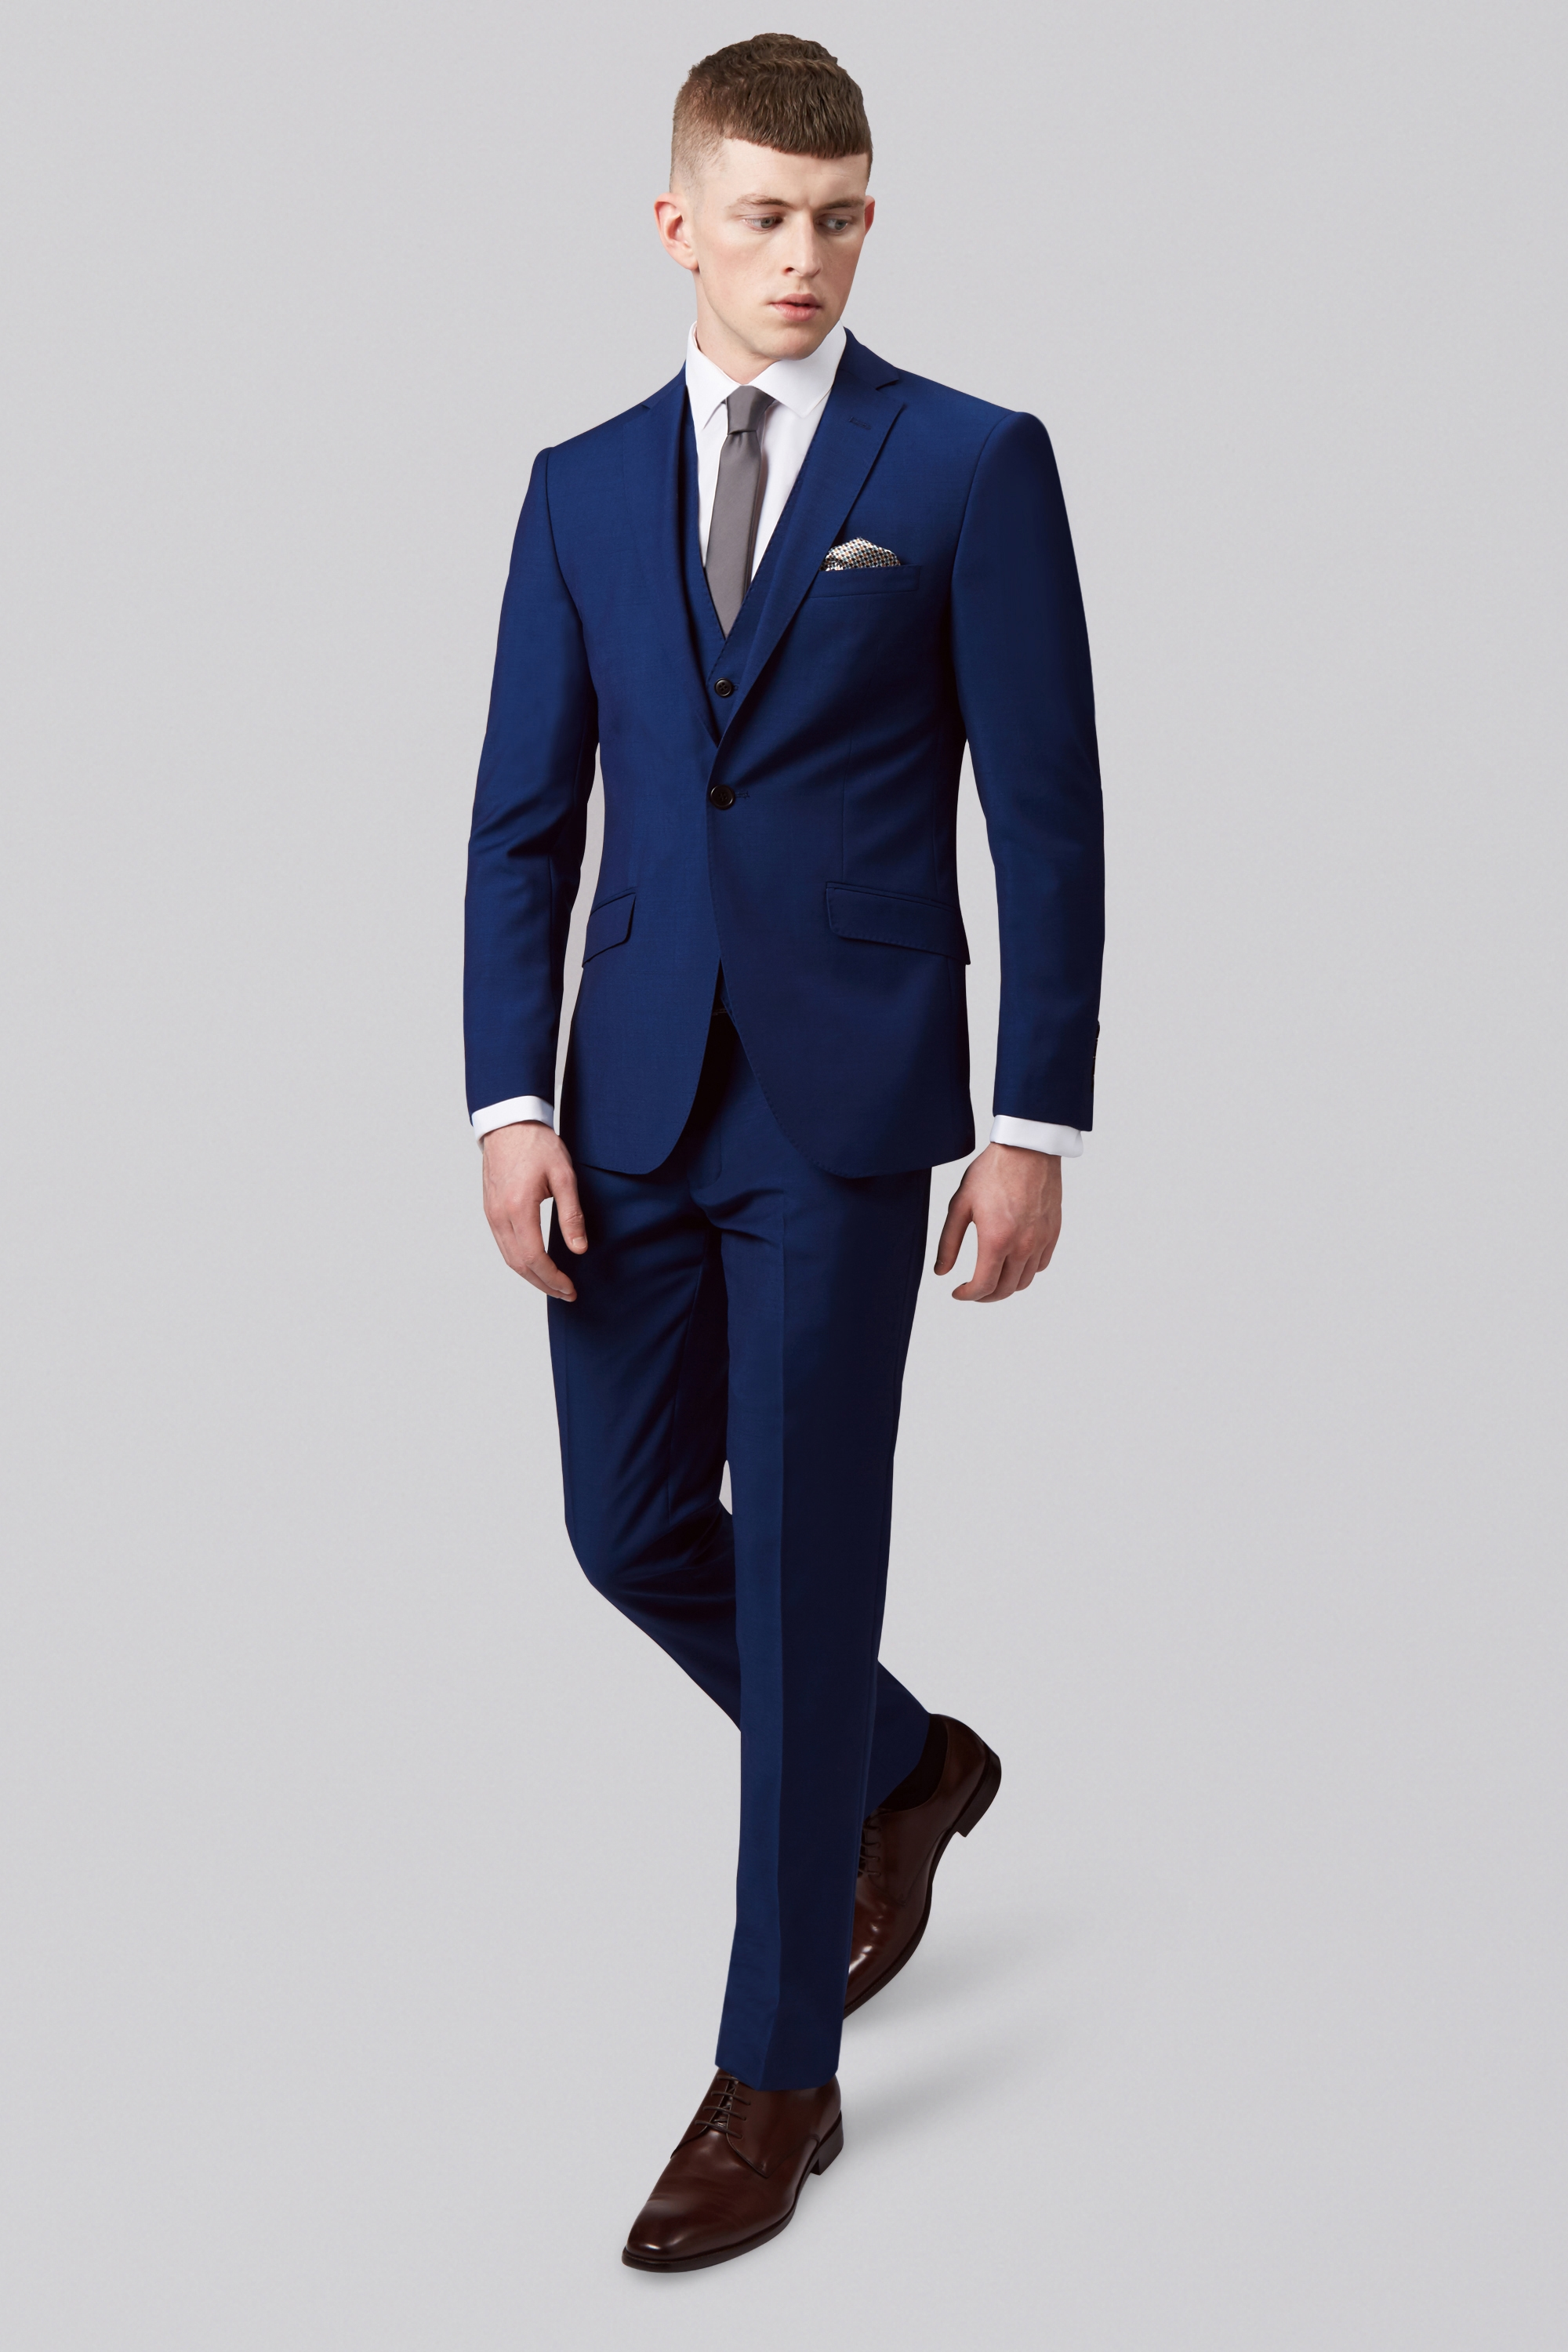 Boys' & Men's Prom Suits | Prom Suits | Moss Bros